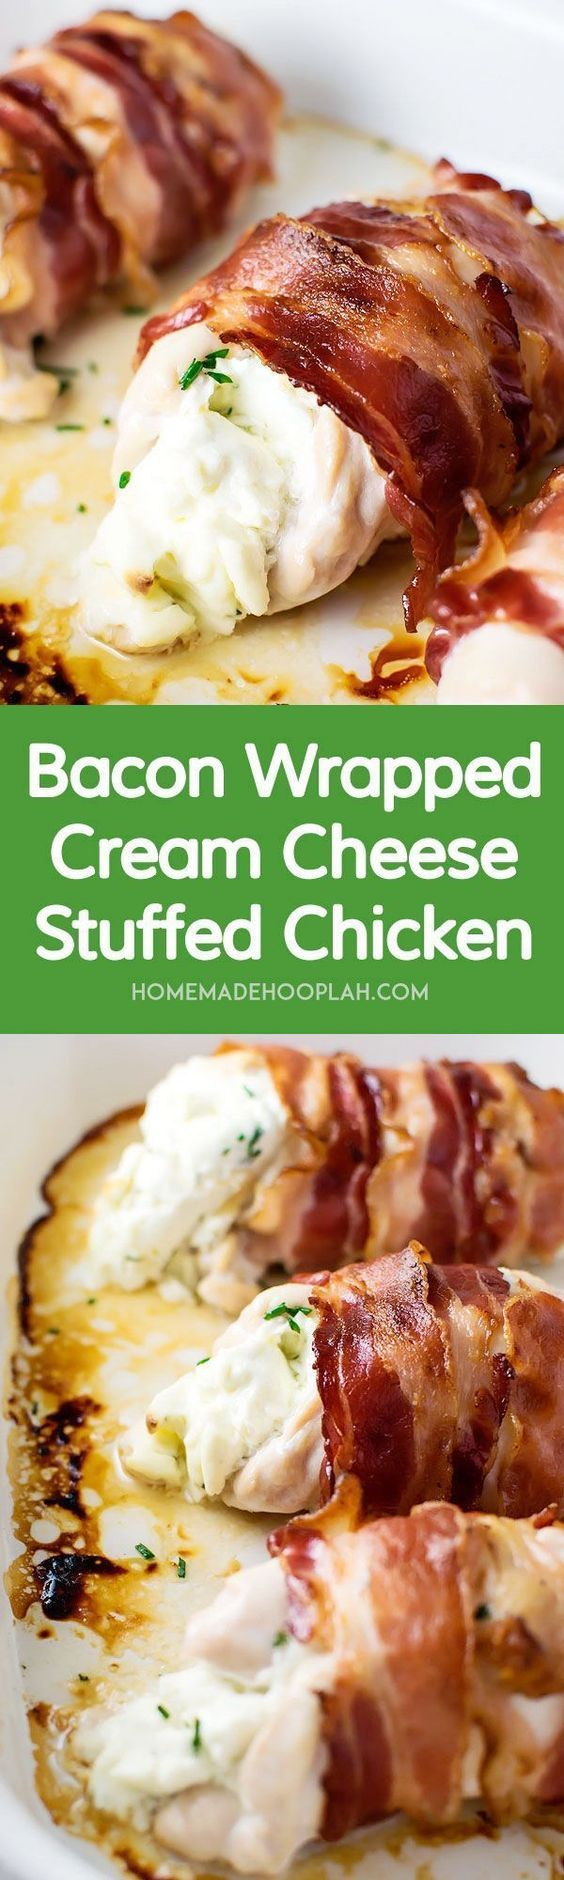 Bacon Wrapped Cream Cheese Stuffed Chicken - Tender chicken breast stuffed with…